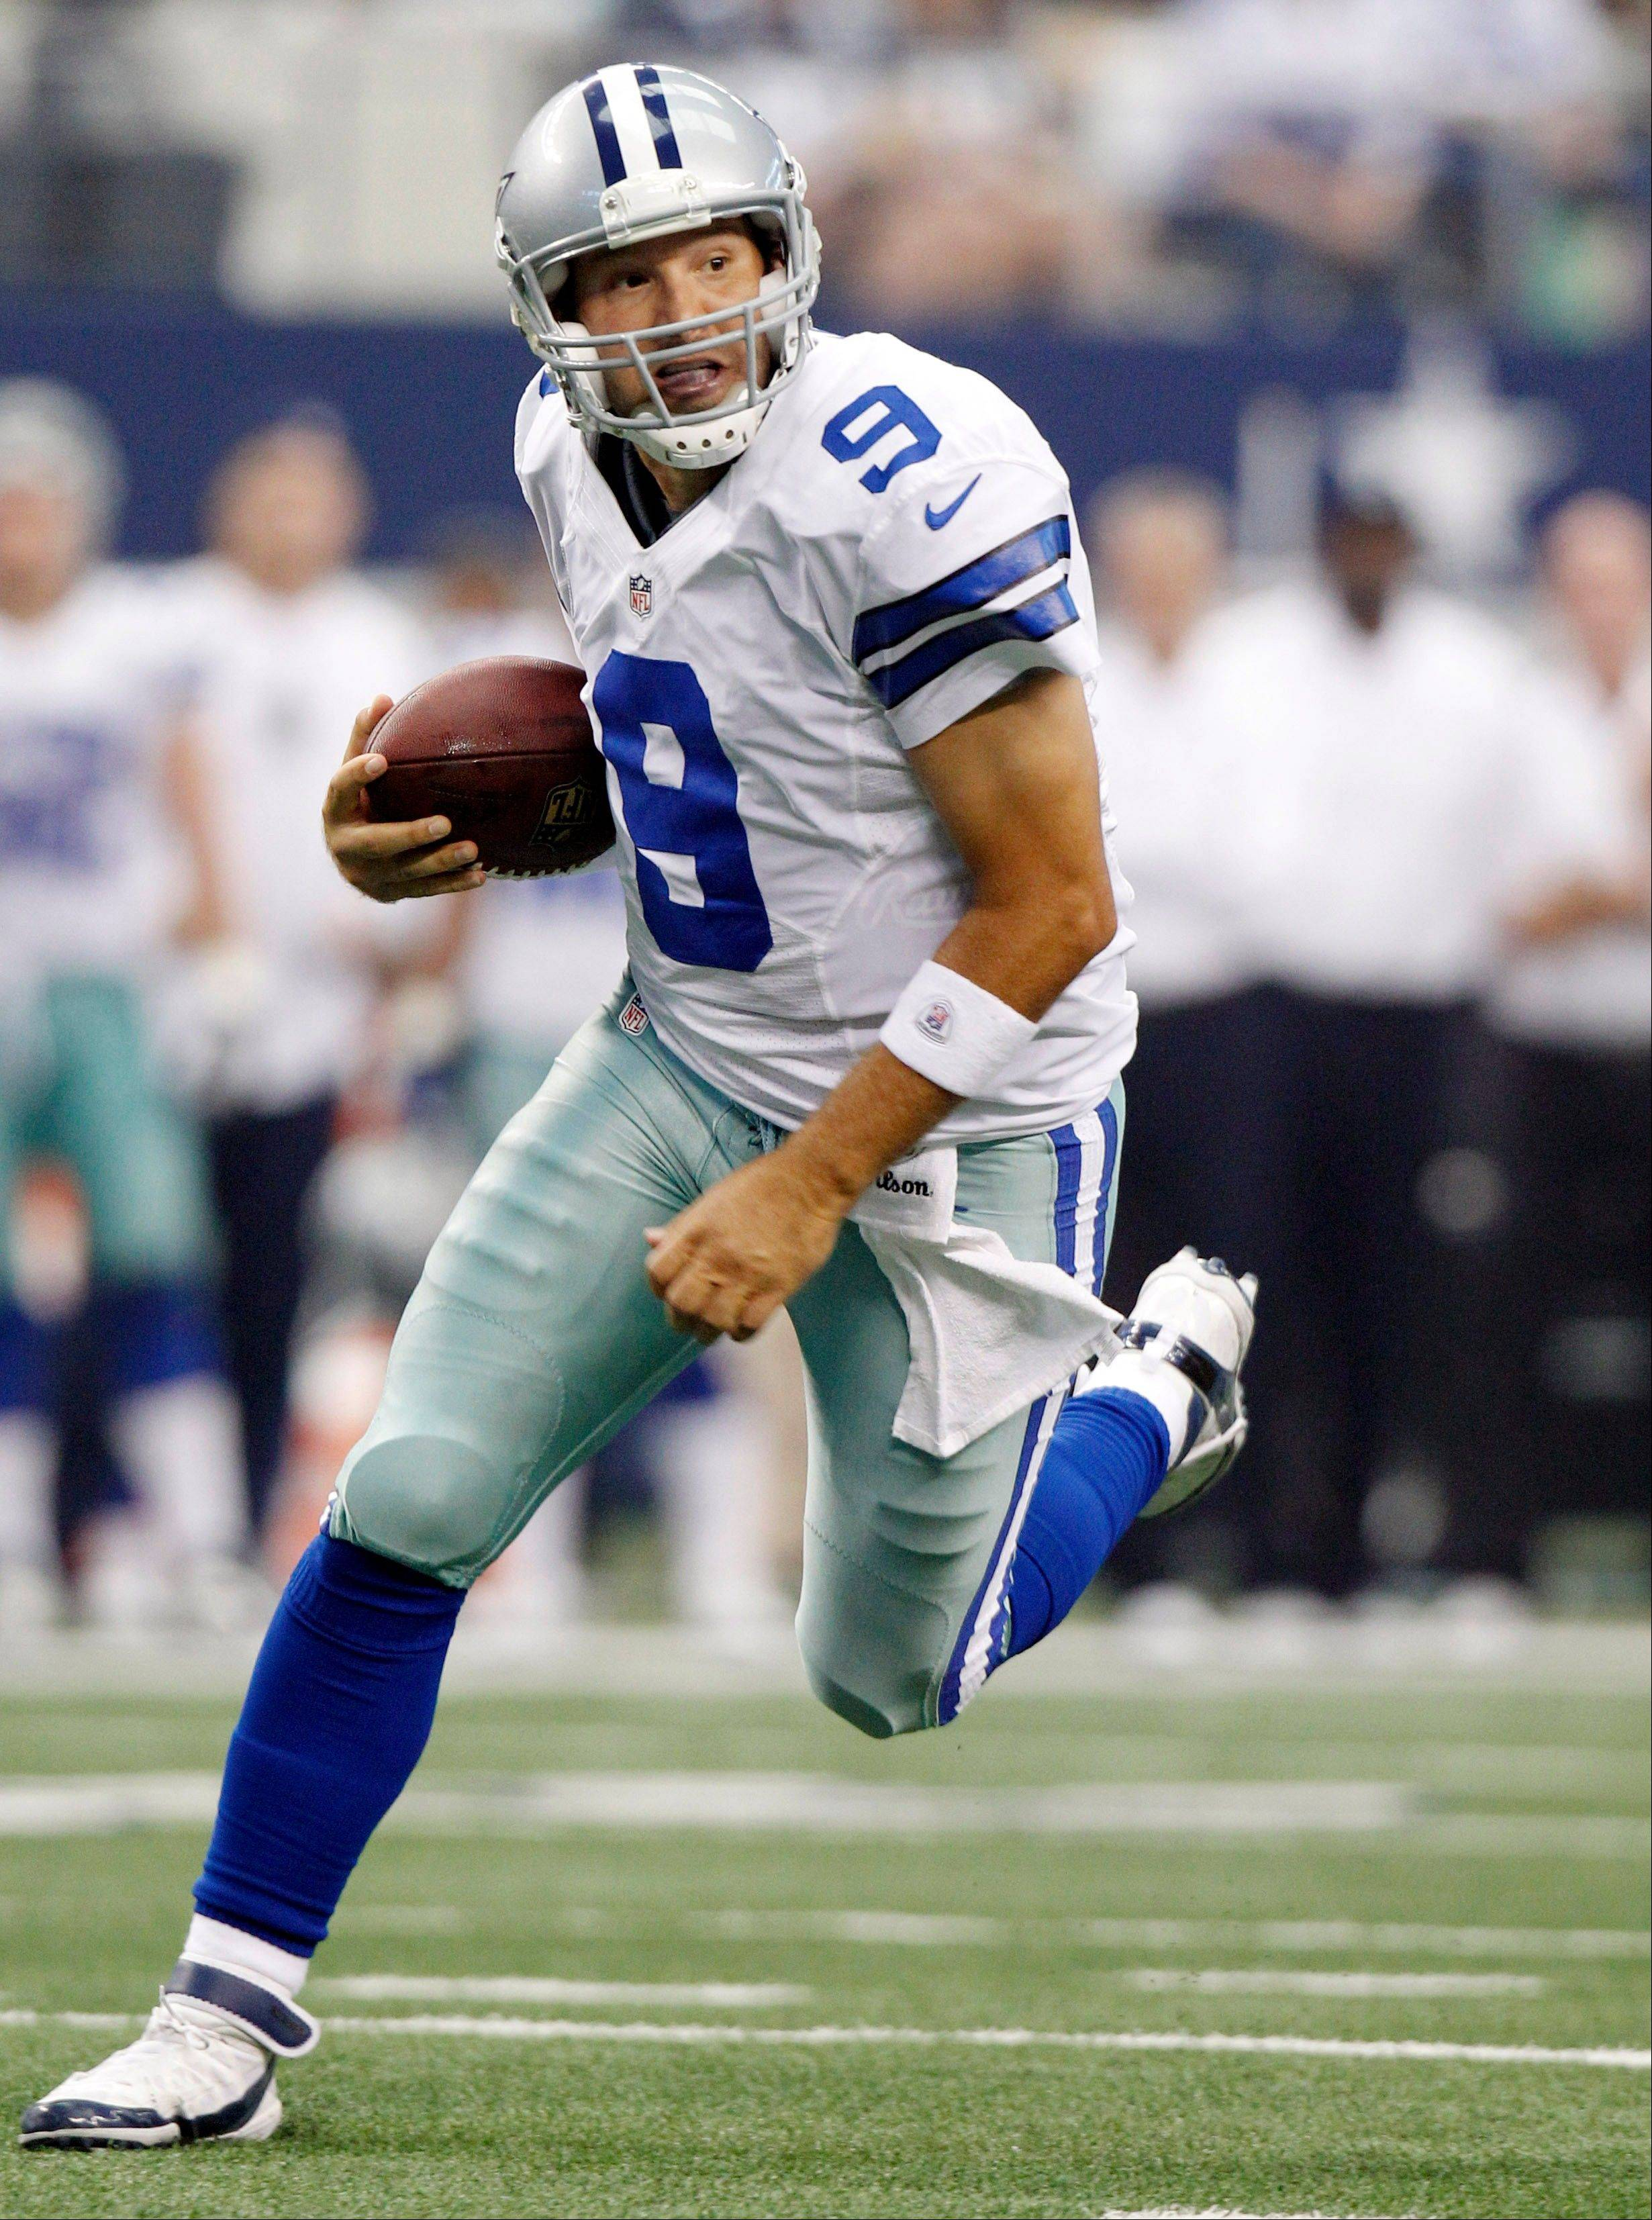 Dallas Cowboys quarterback Tony Romo runs the ball against the Tampa Bay Buccaneers Sunday during the first half in Arlington, Texas.